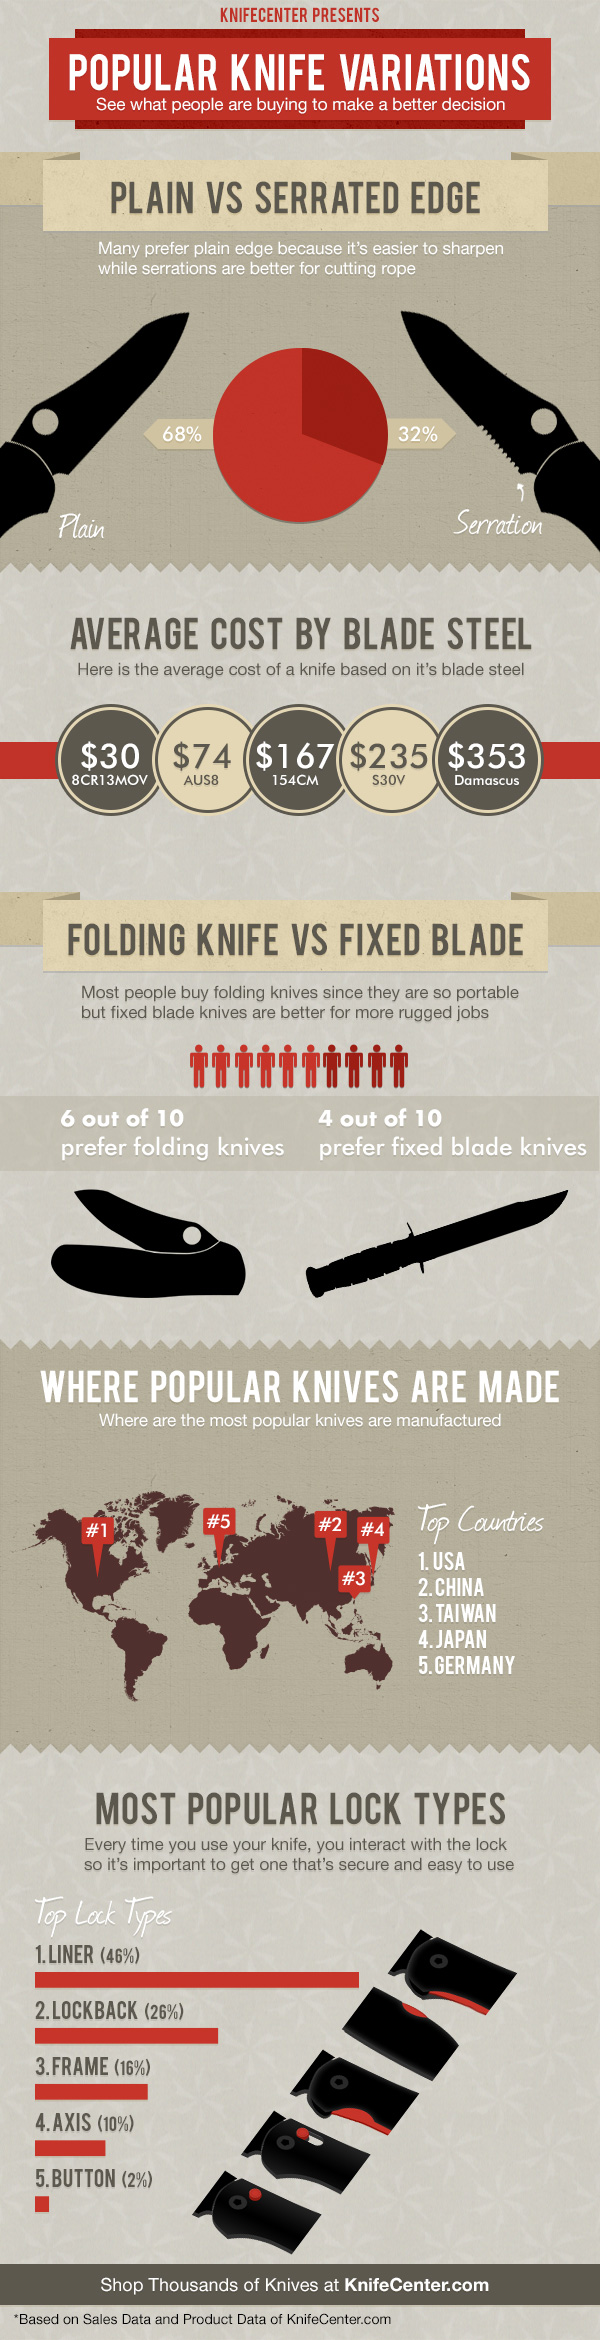 popular-knife-variations_50bfb4ae0a4d4